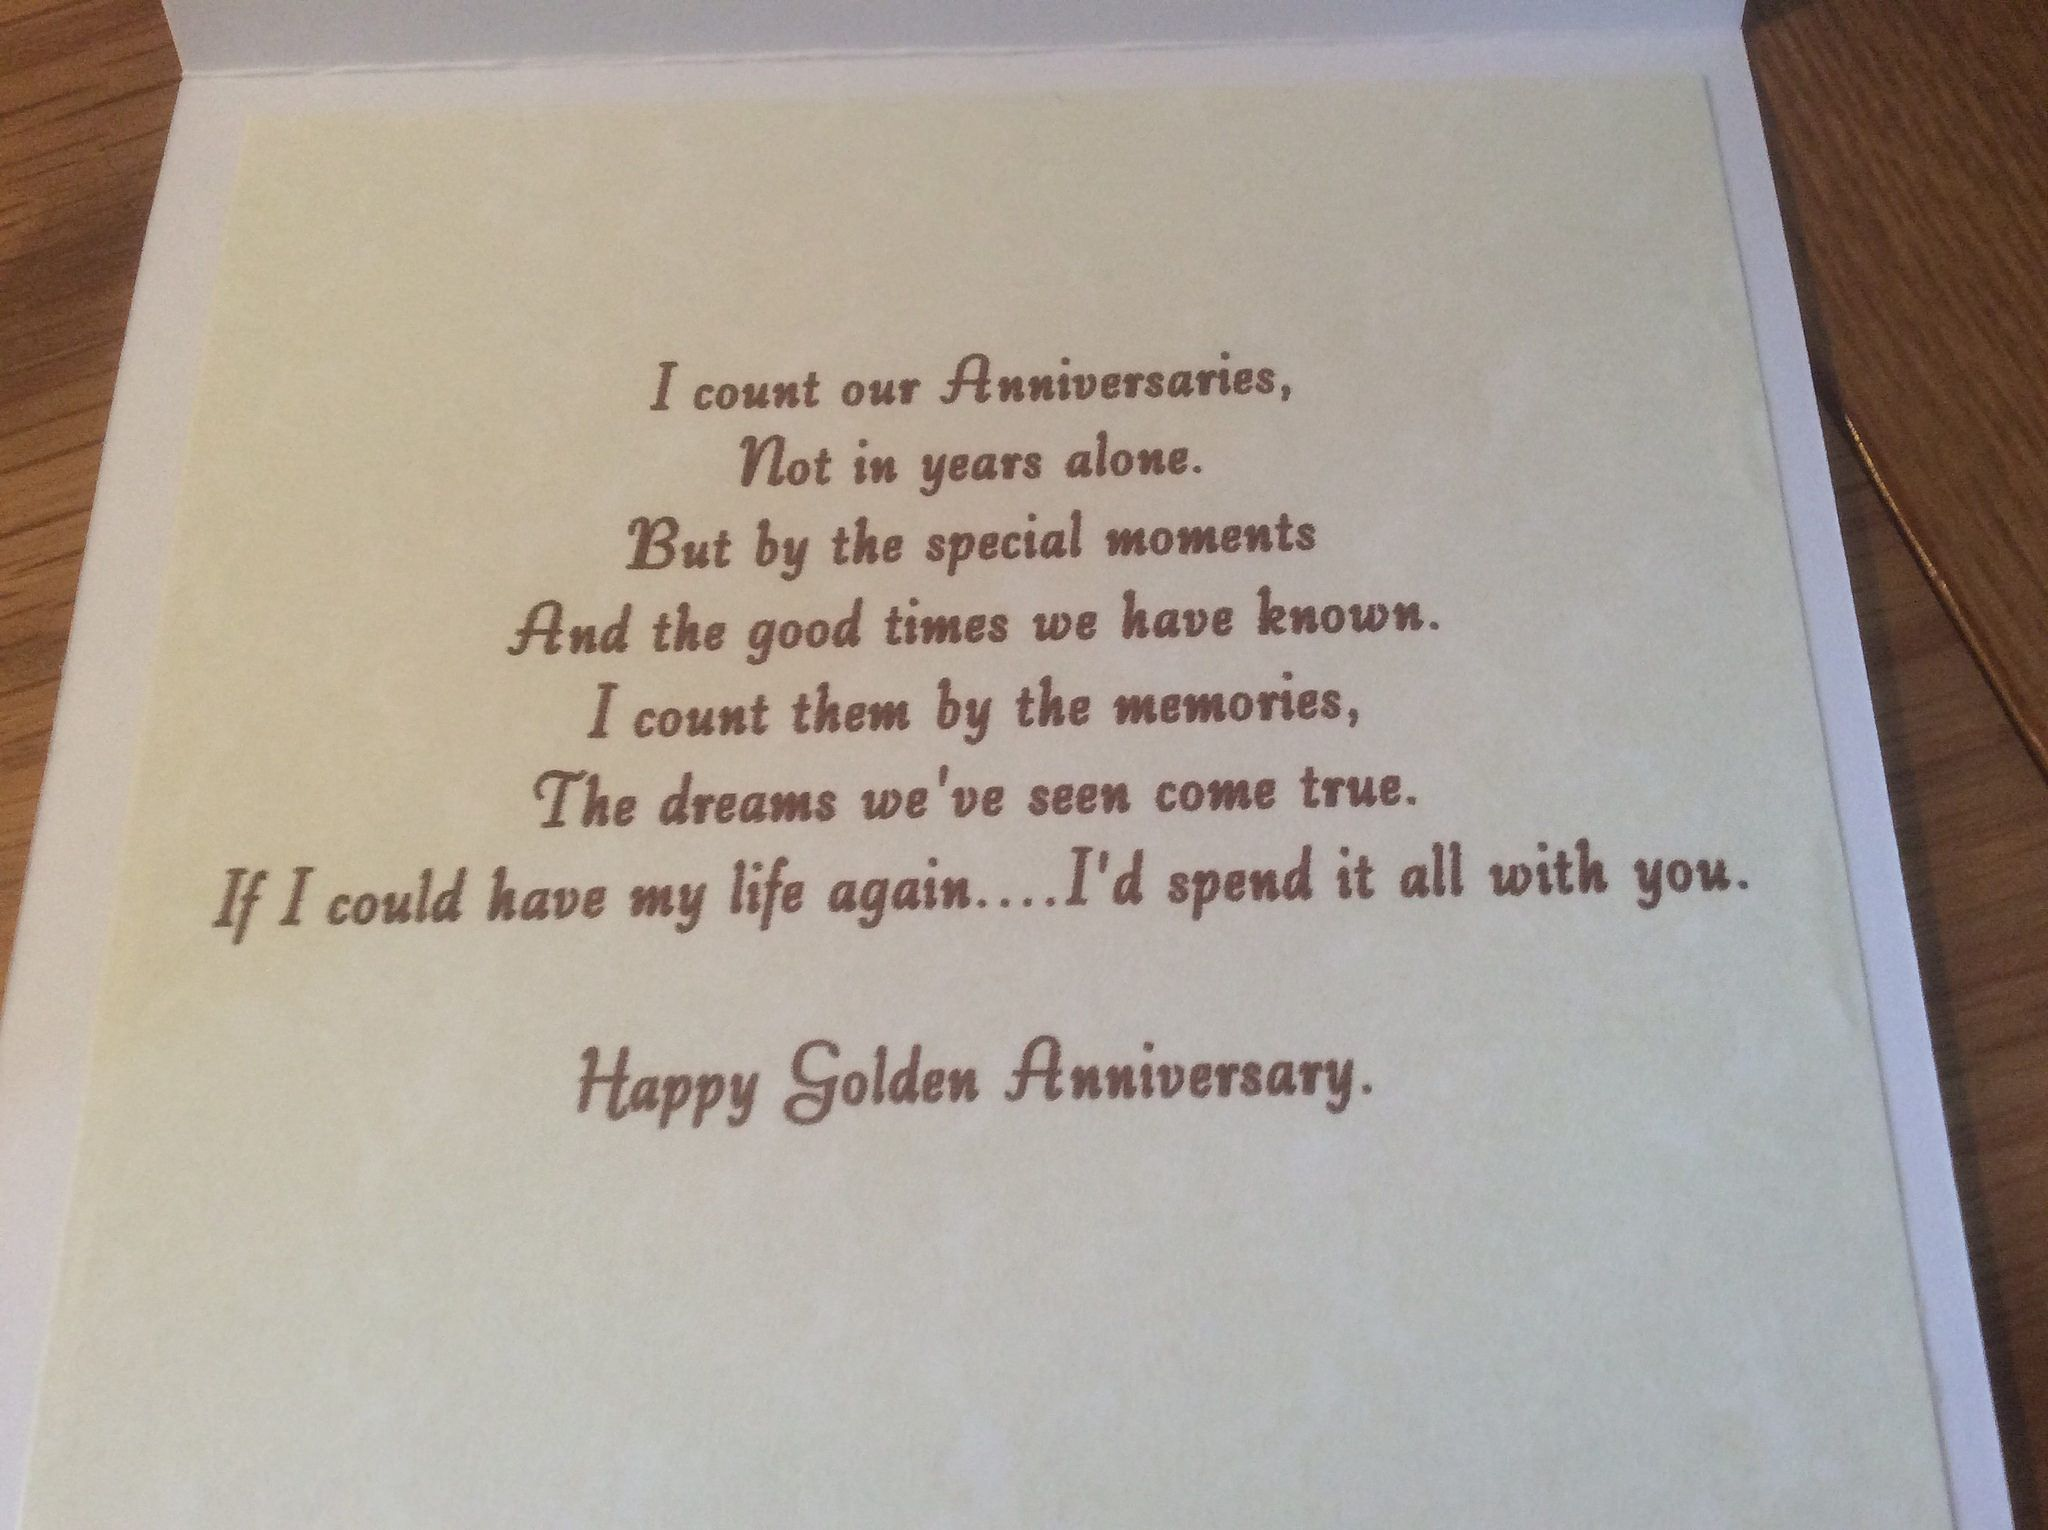 Card Verses For 50th Wedding Anniversary In 2020 Golden Wedding Anniversary Card Wedding Anniversary Cards Anniversary Verses